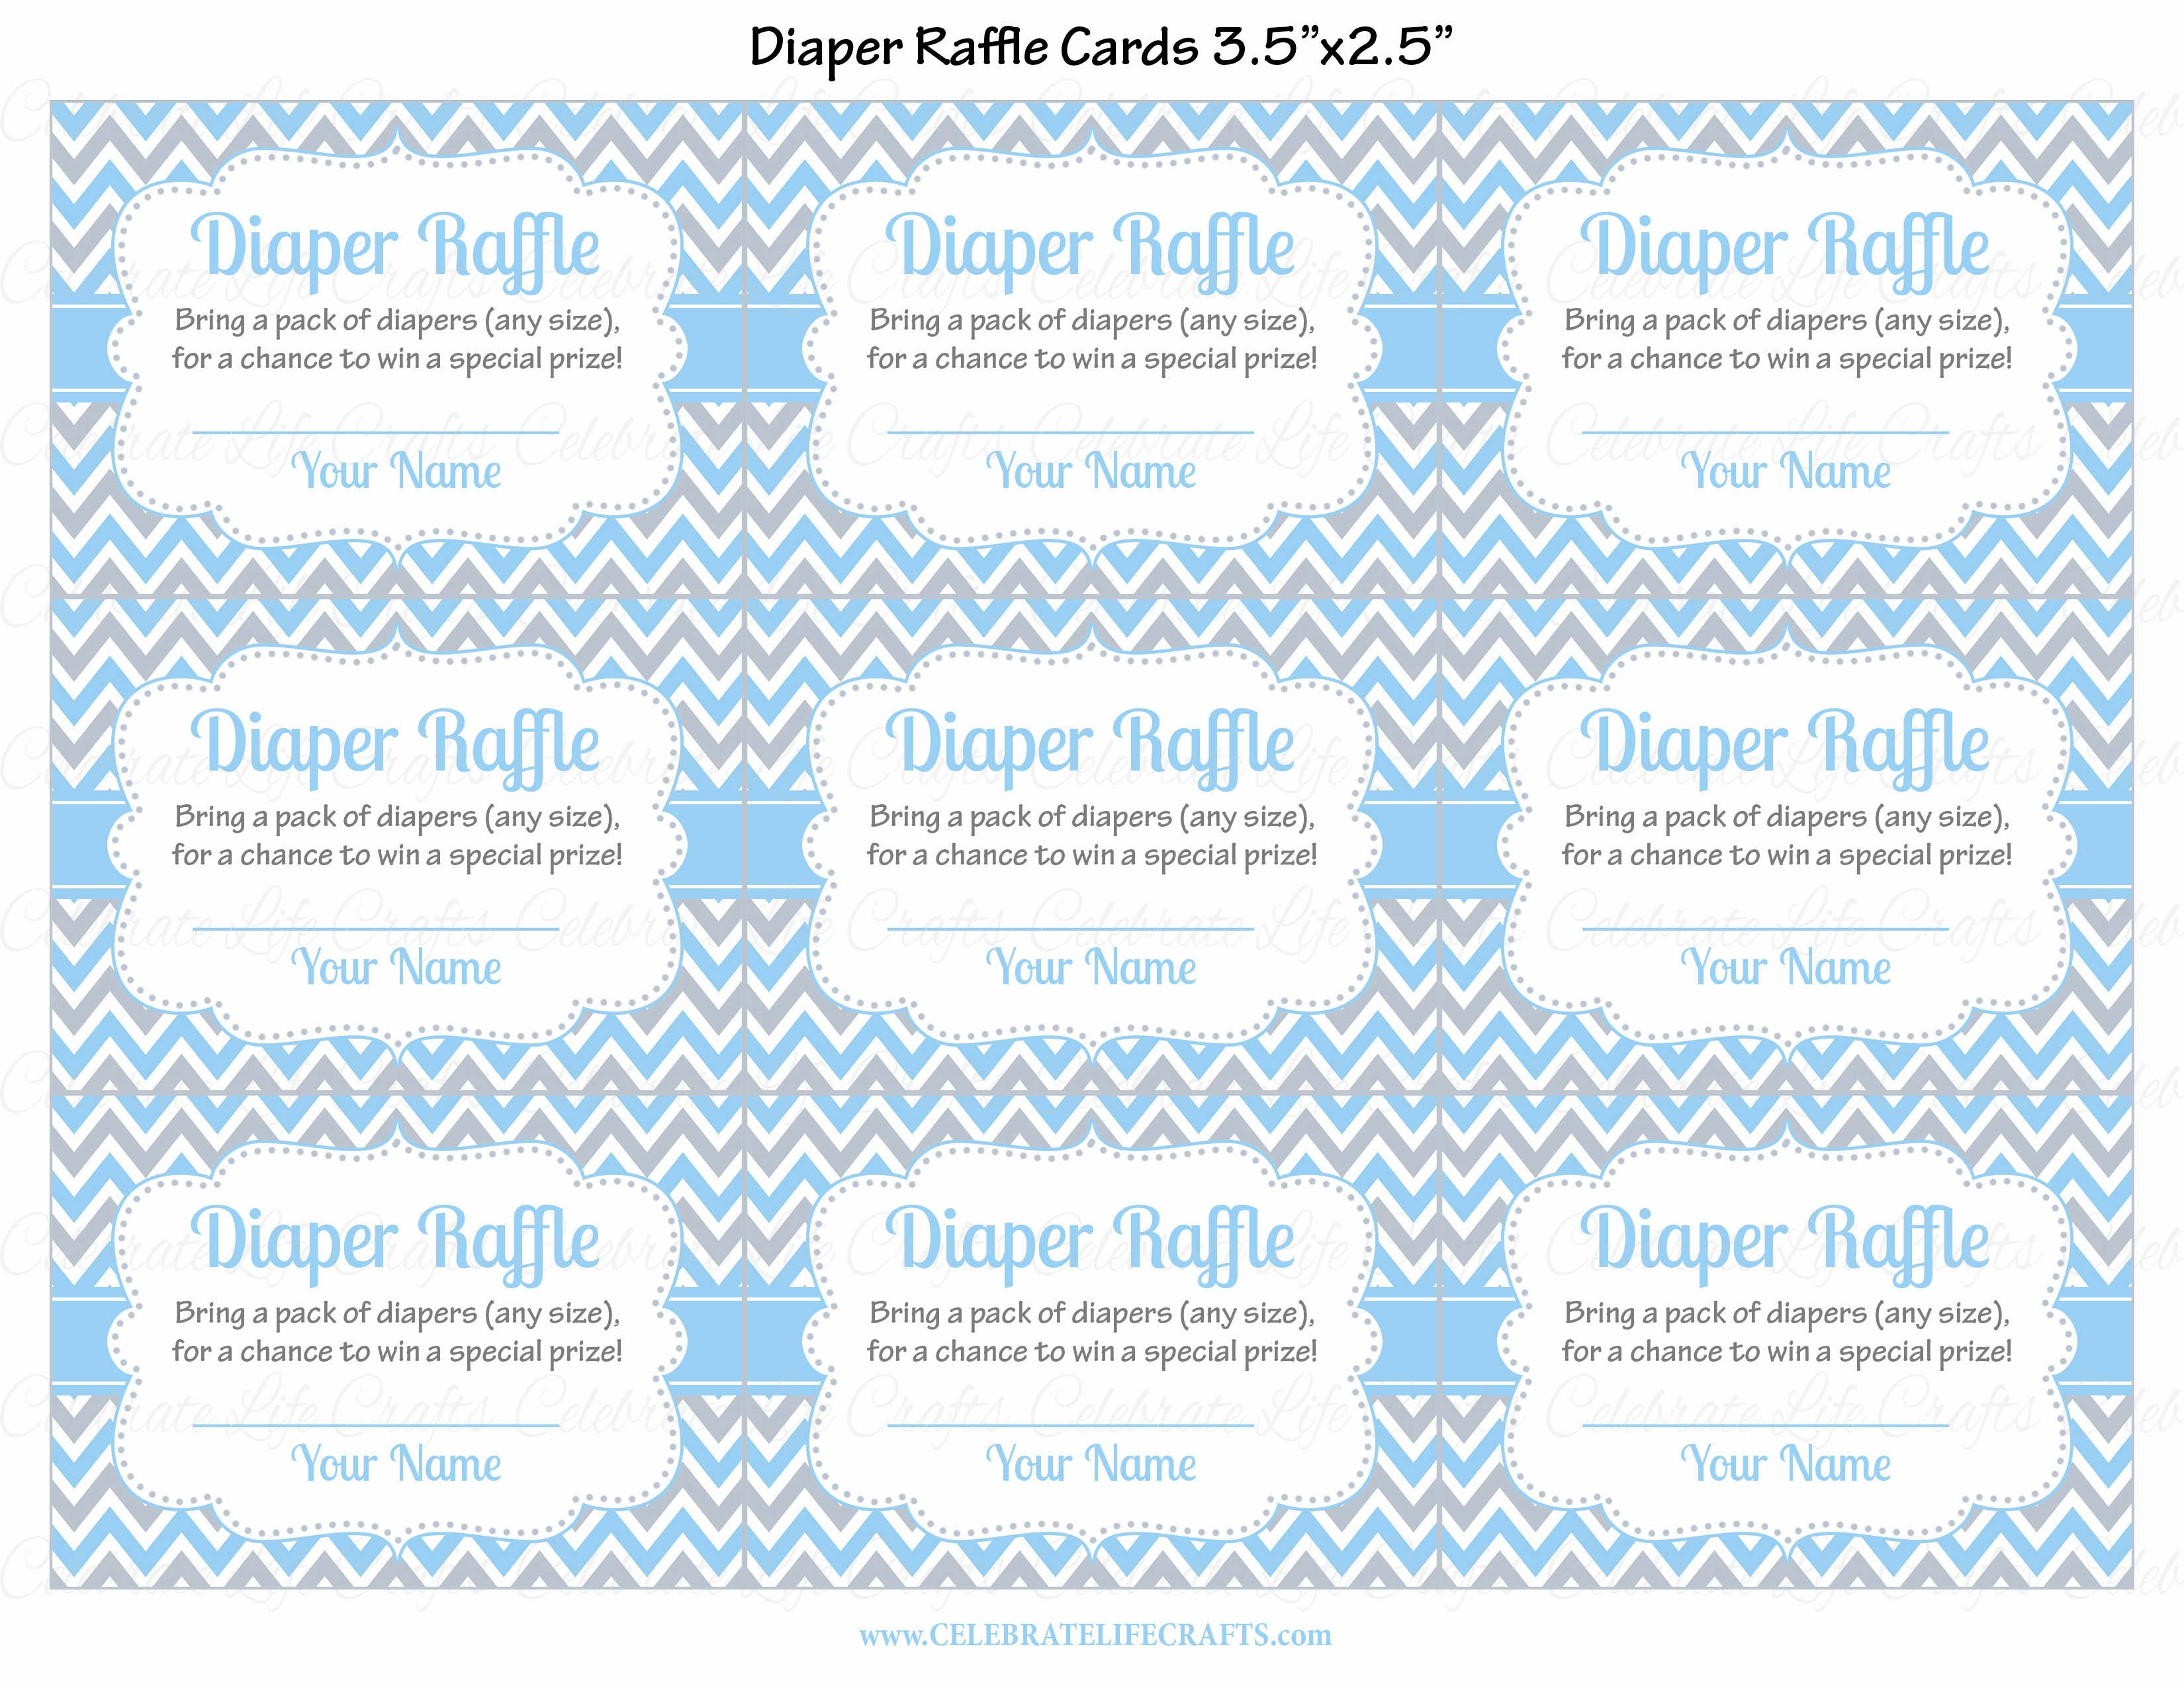 picture relating to Diaper Raffle Tickets Printable Free referred to as Diaper Raffle Tickets for Youngster Shower - Minor Gentleman Child